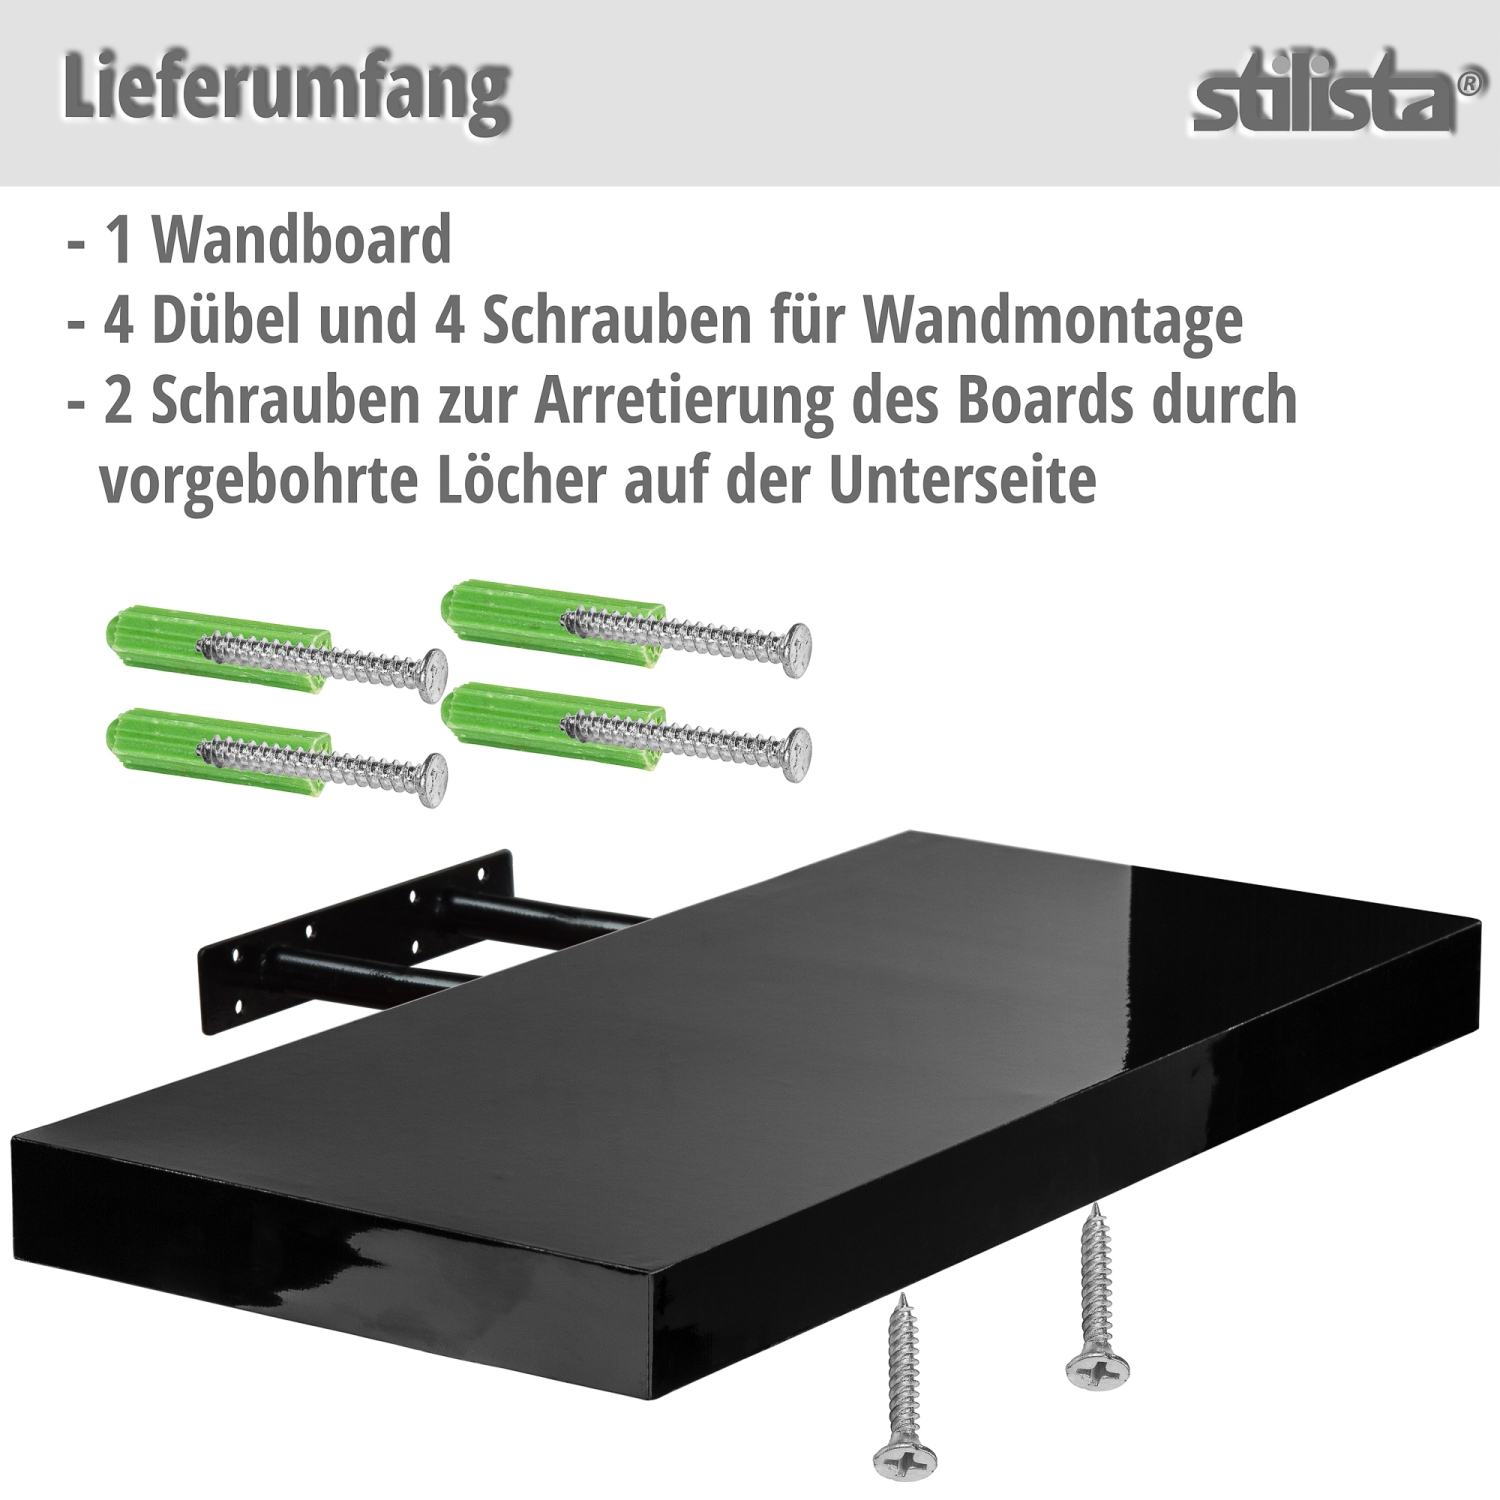 stilista wandboard volato wandregal cd dvd regal 90cm wei hochglanz ebay. Black Bedroom Furniture Sets. Home Design Ideas